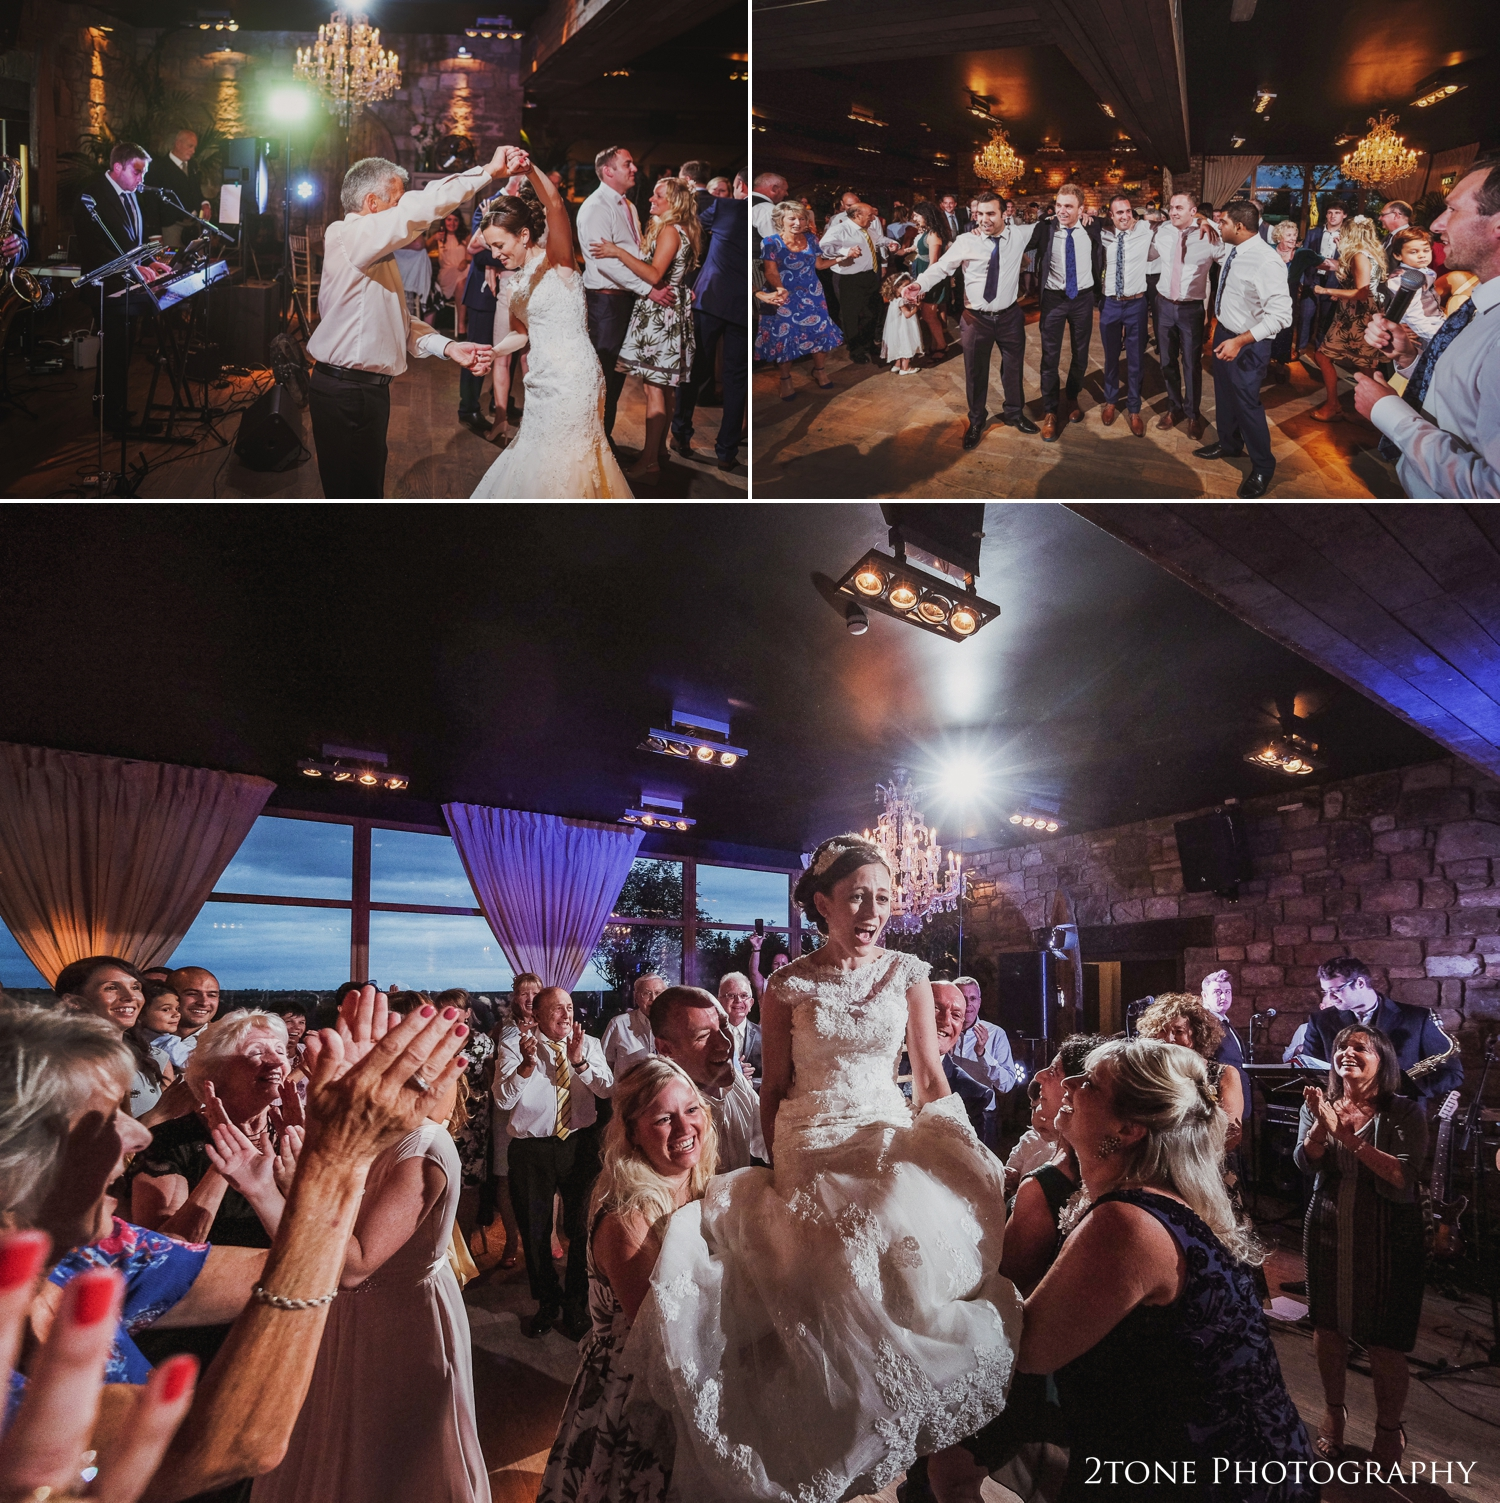 The end of the first dance introduced the beginning of the traditional Hora dancing, a nod to Alex's jewish background.